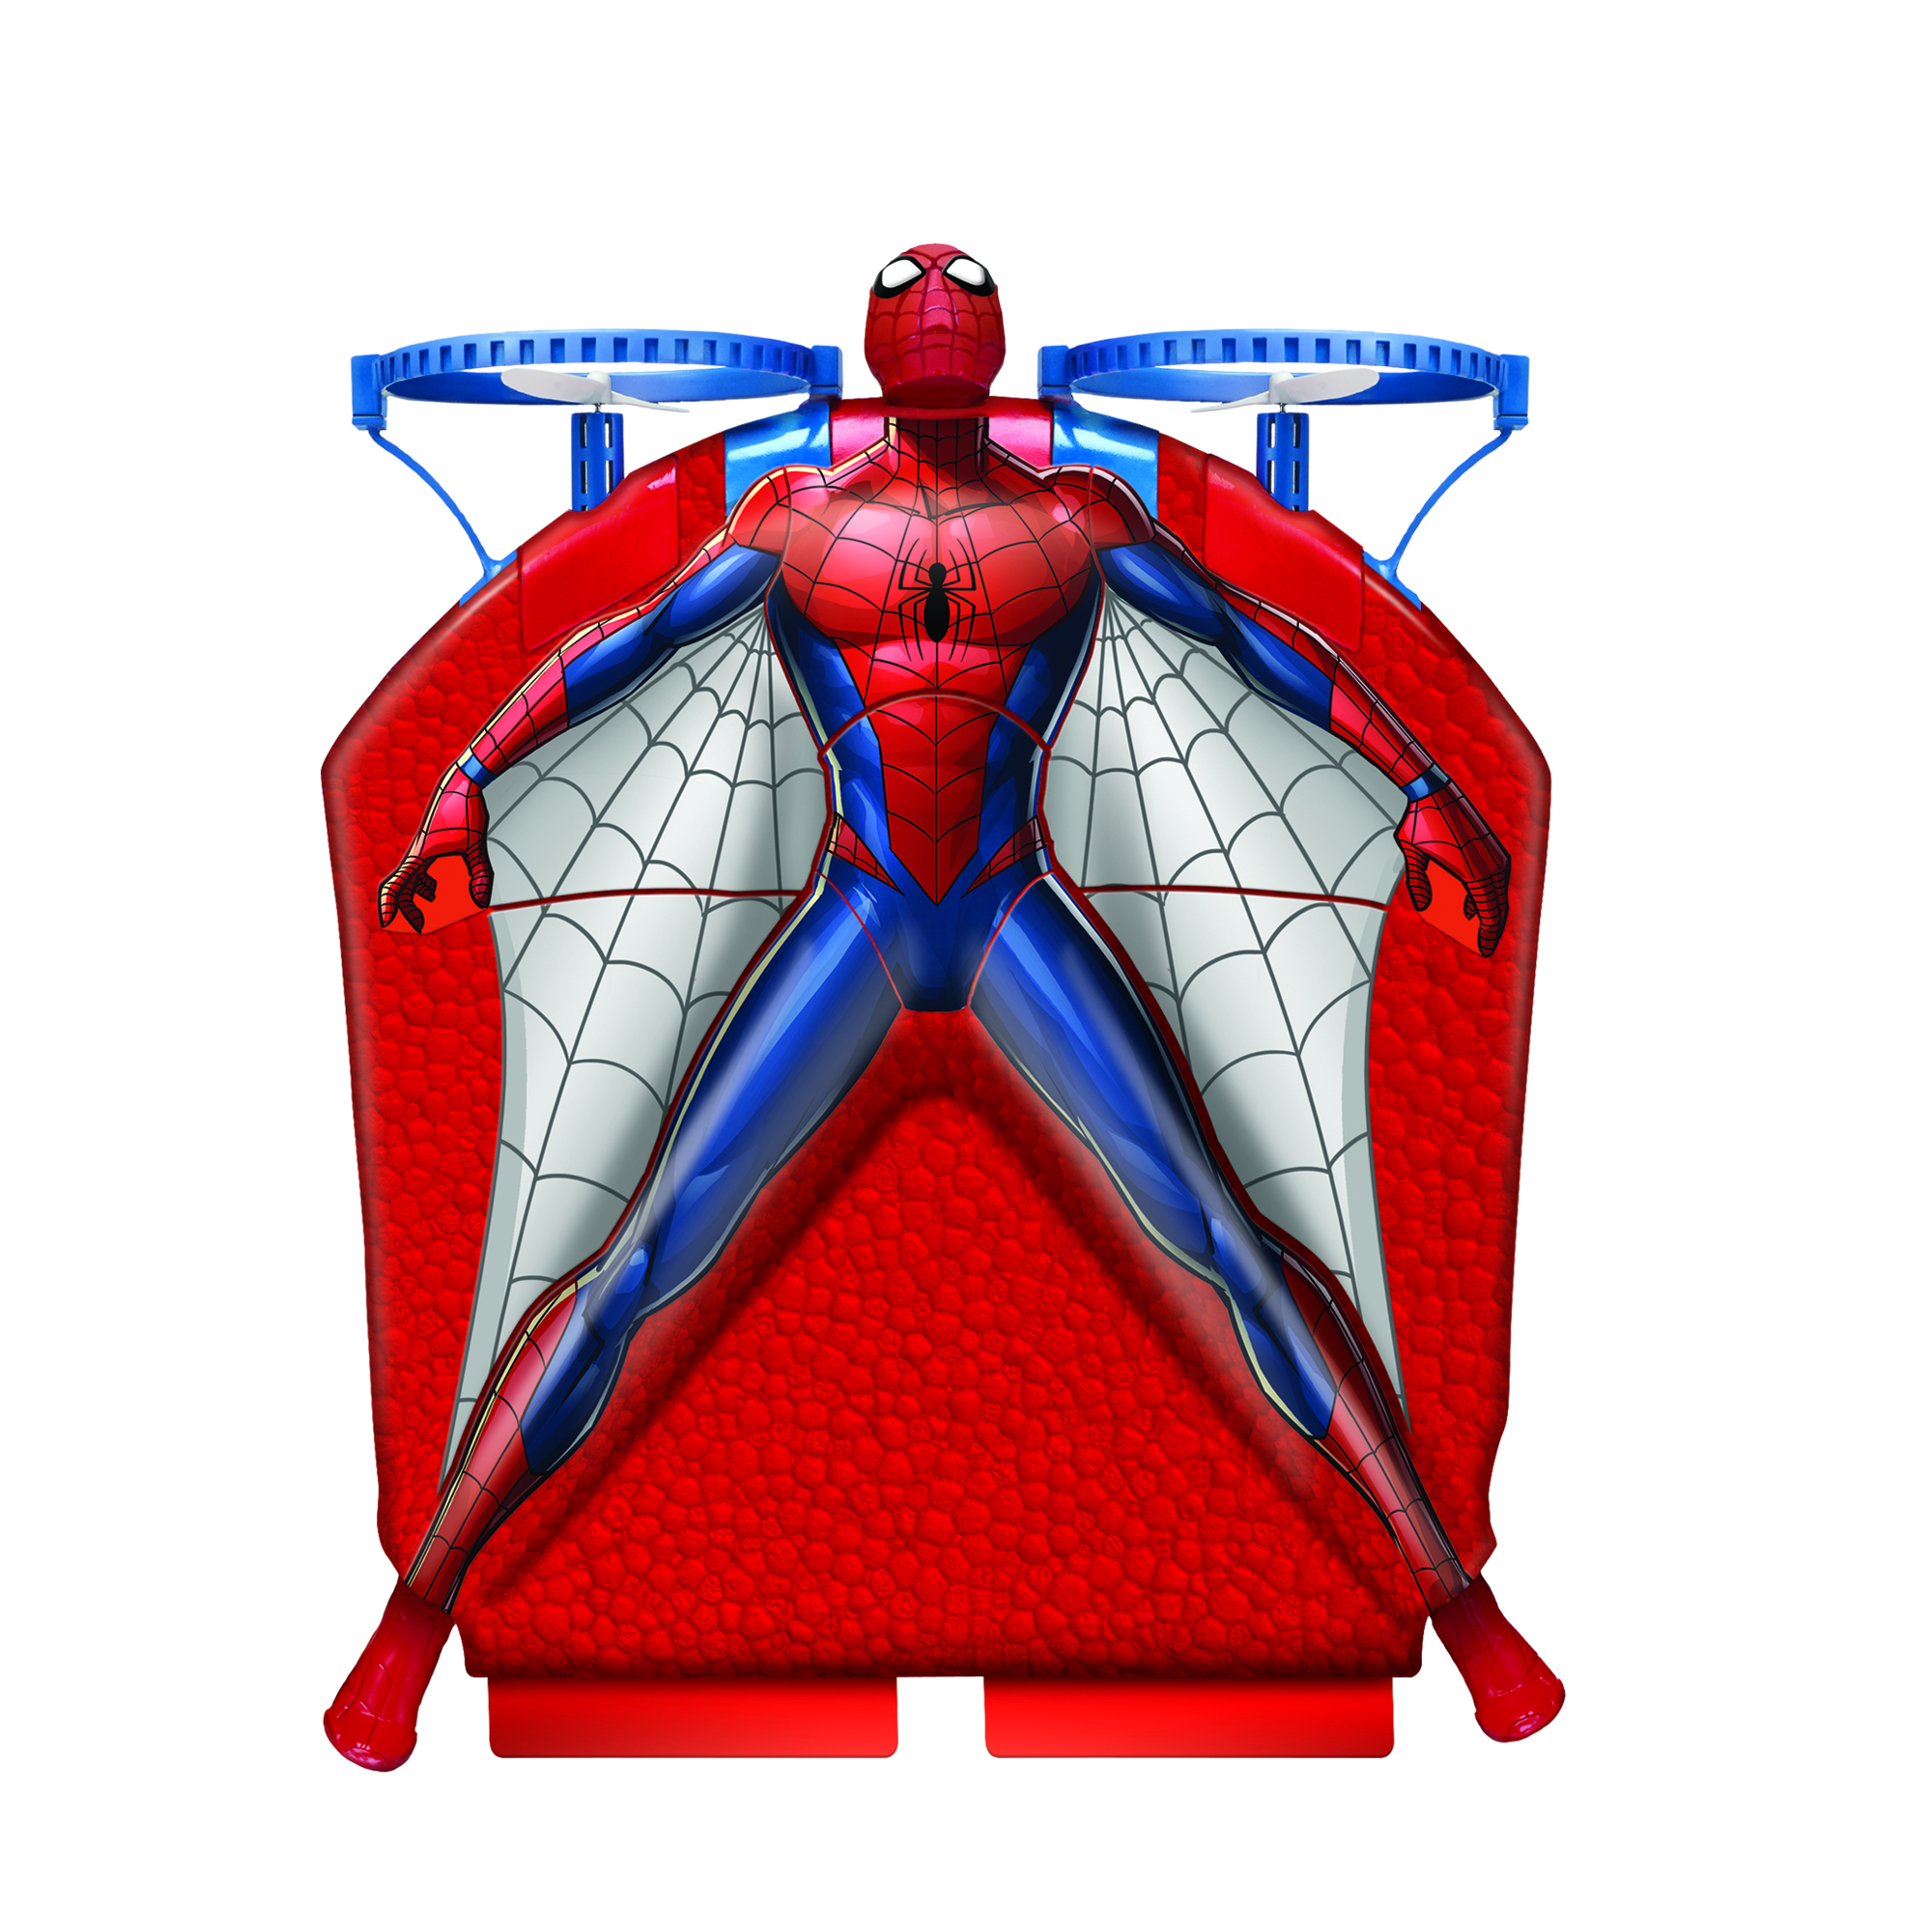 Super G Wingsuit Spiderman by Playmates Toys Inc